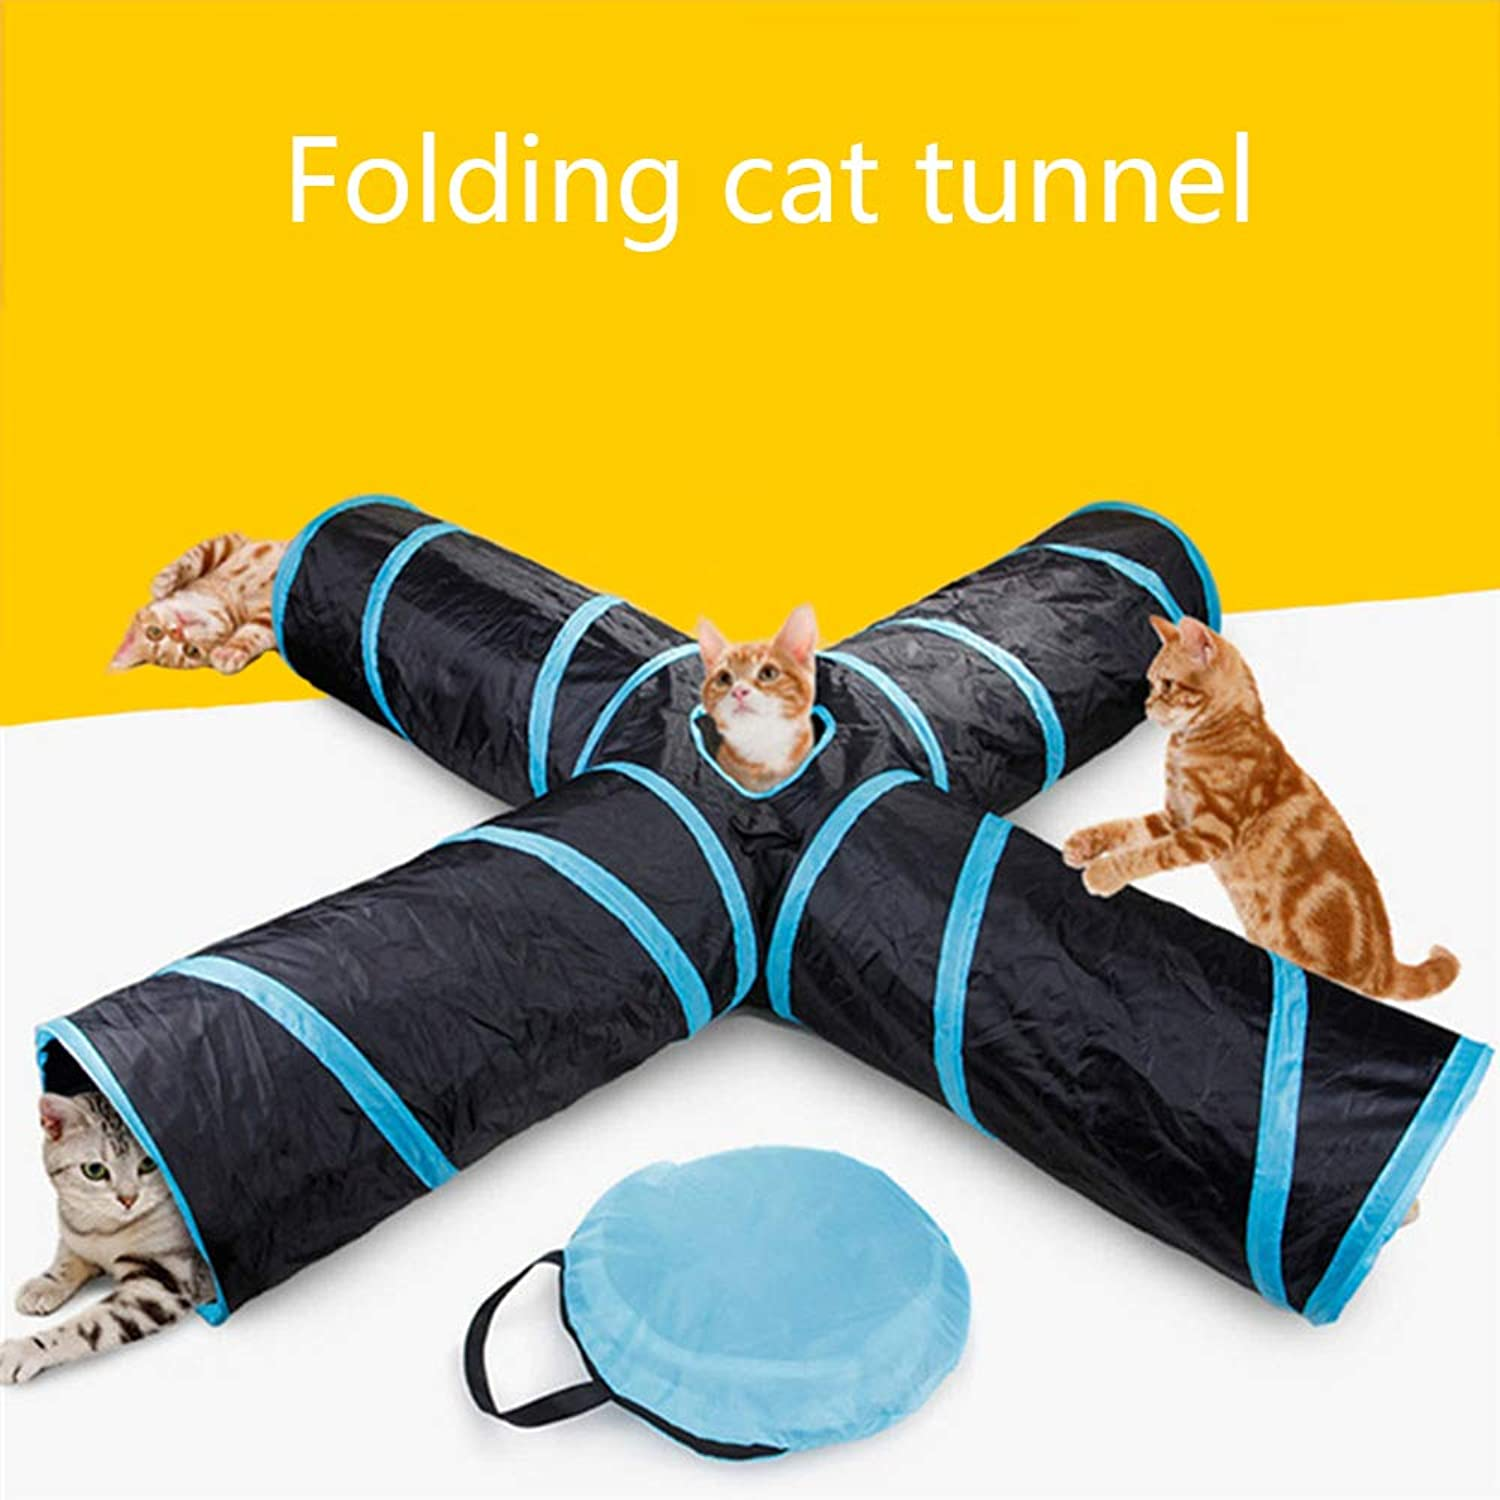 Cat Tunnel Toy, 4 Hole Folding Storage Bag Set pet Tunnel Tube e cat toy Ball, Big cat, Rabbit, Guinea Pig, indoor e outdoor use